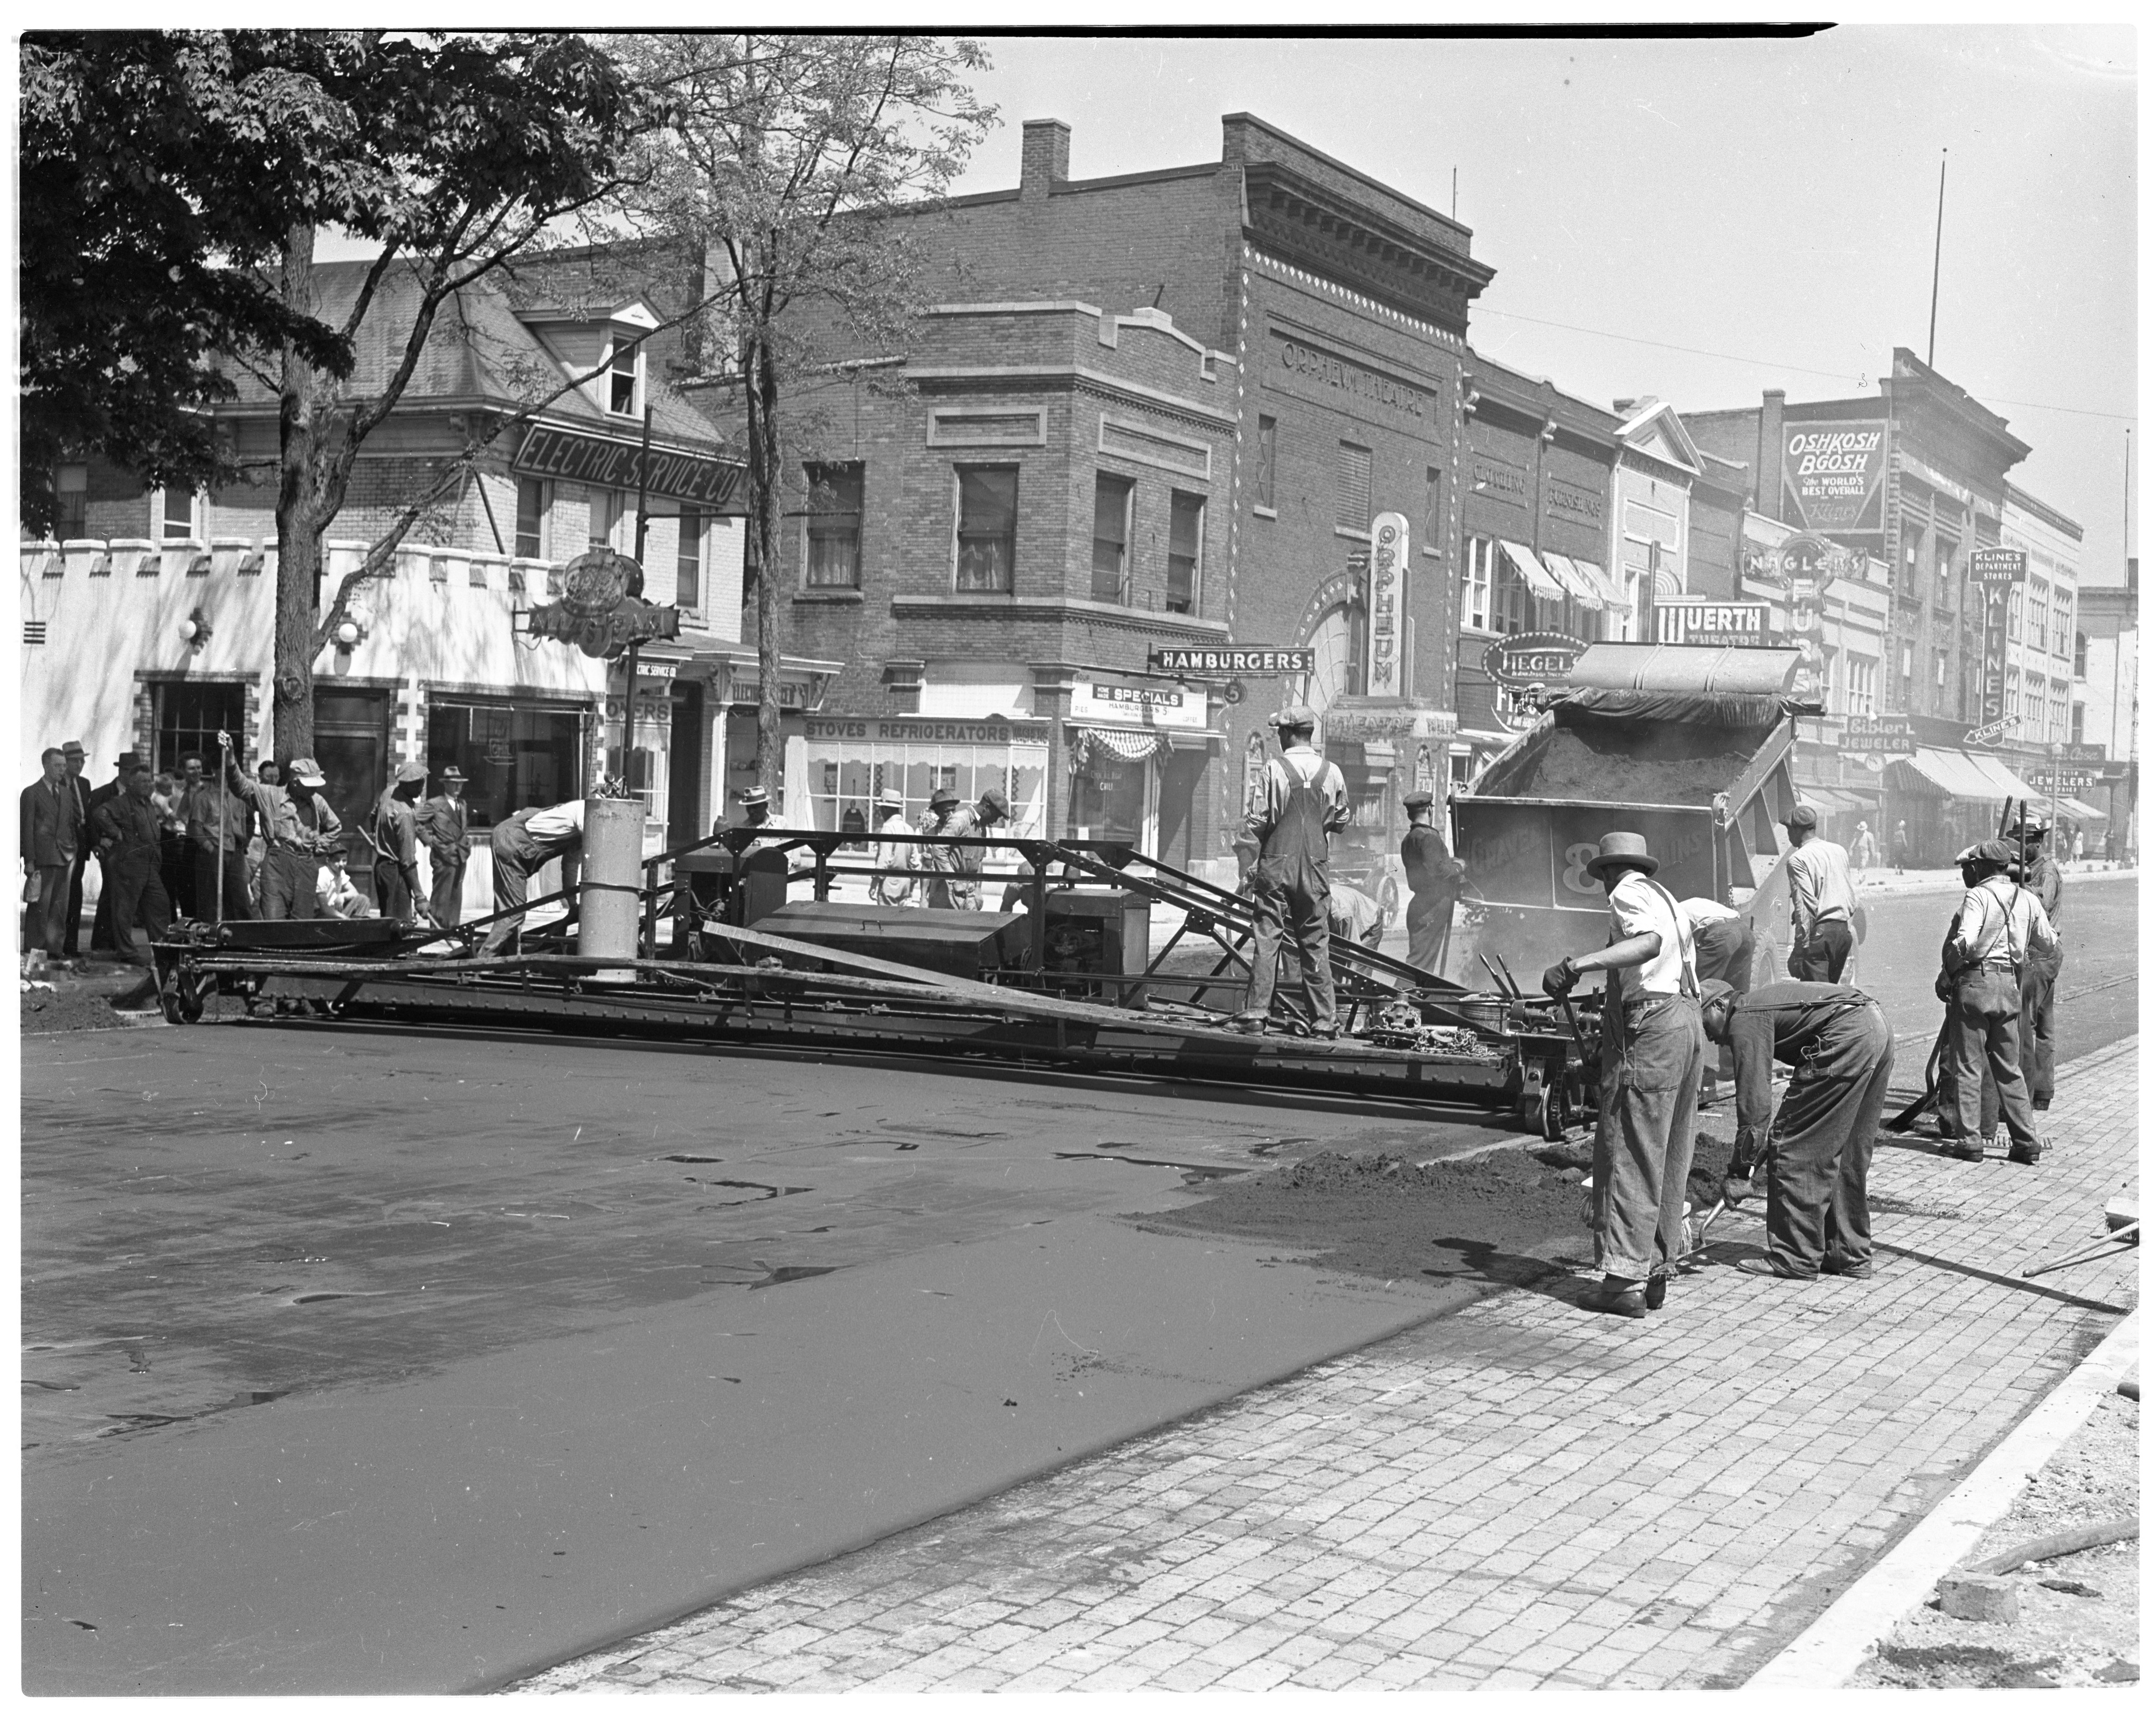 Laying asphalt on Main Street, May 1939 image